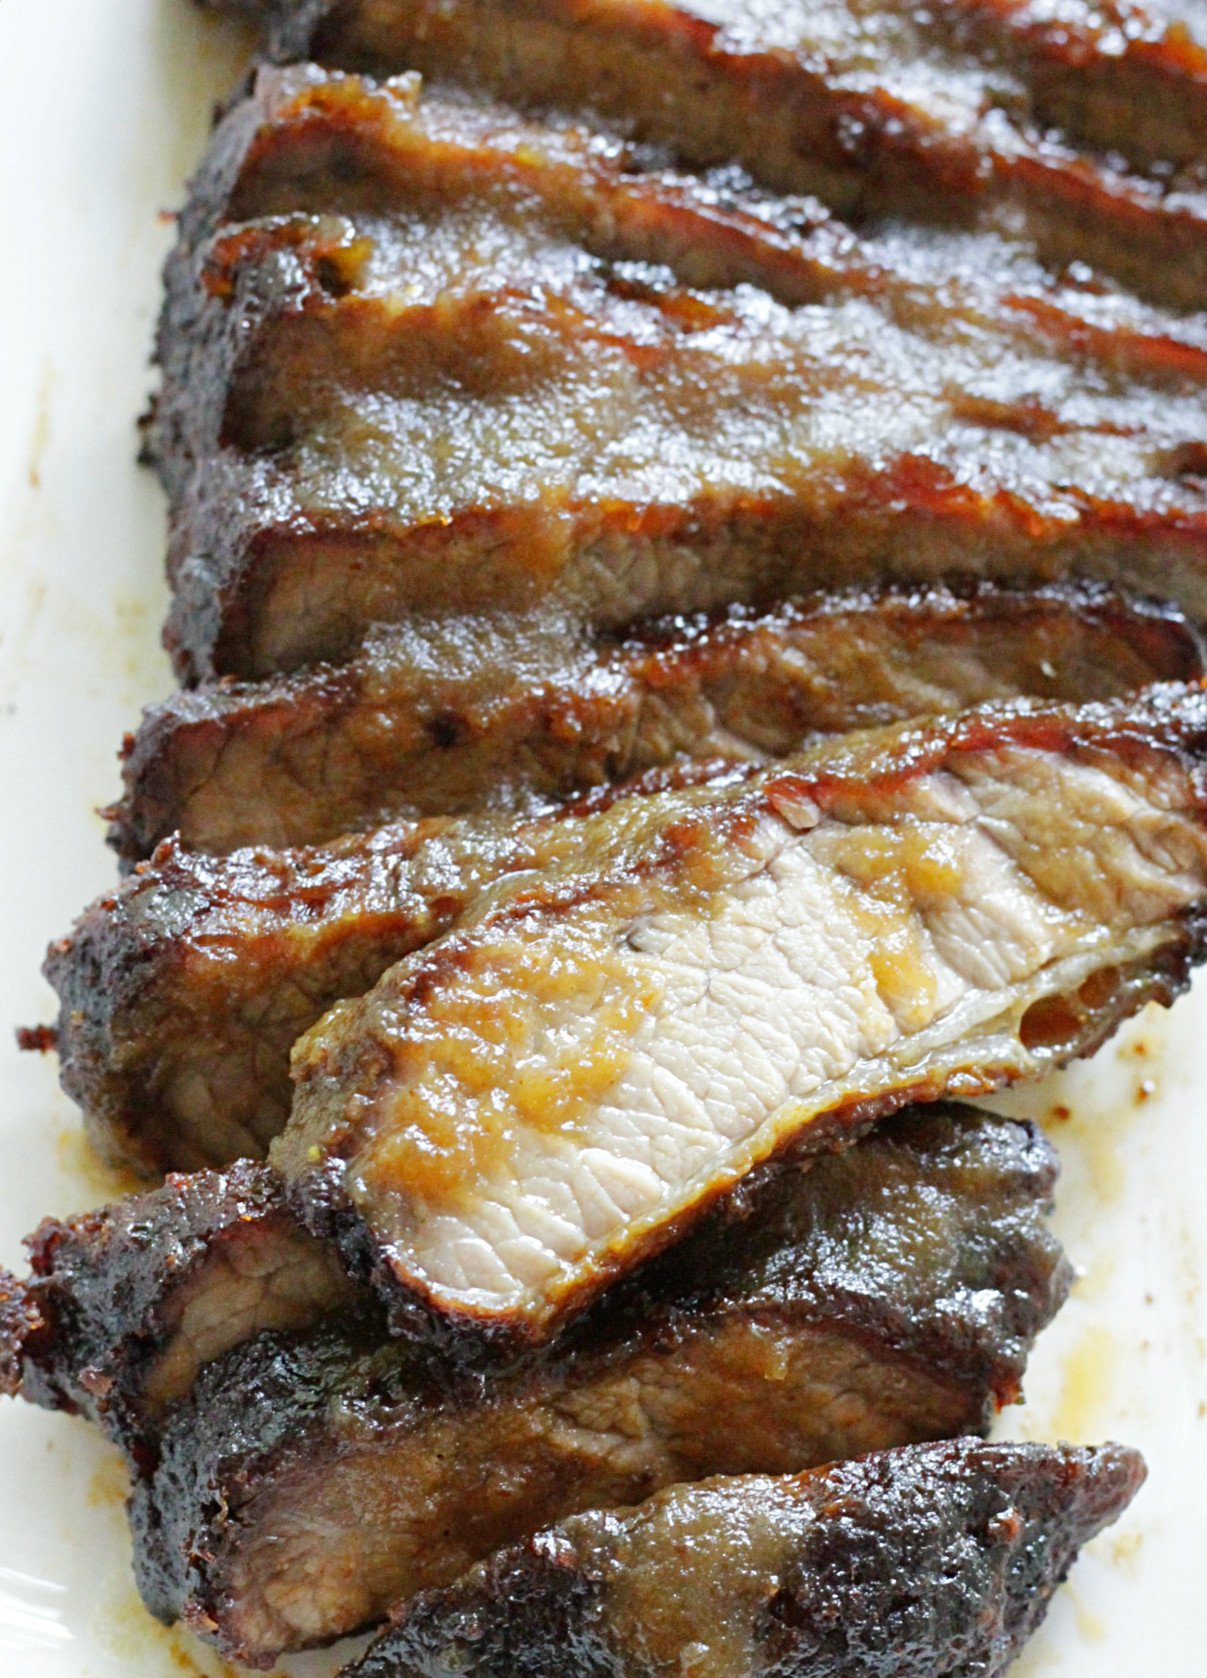 sliced brisket basted with apple butter barbecue sauce